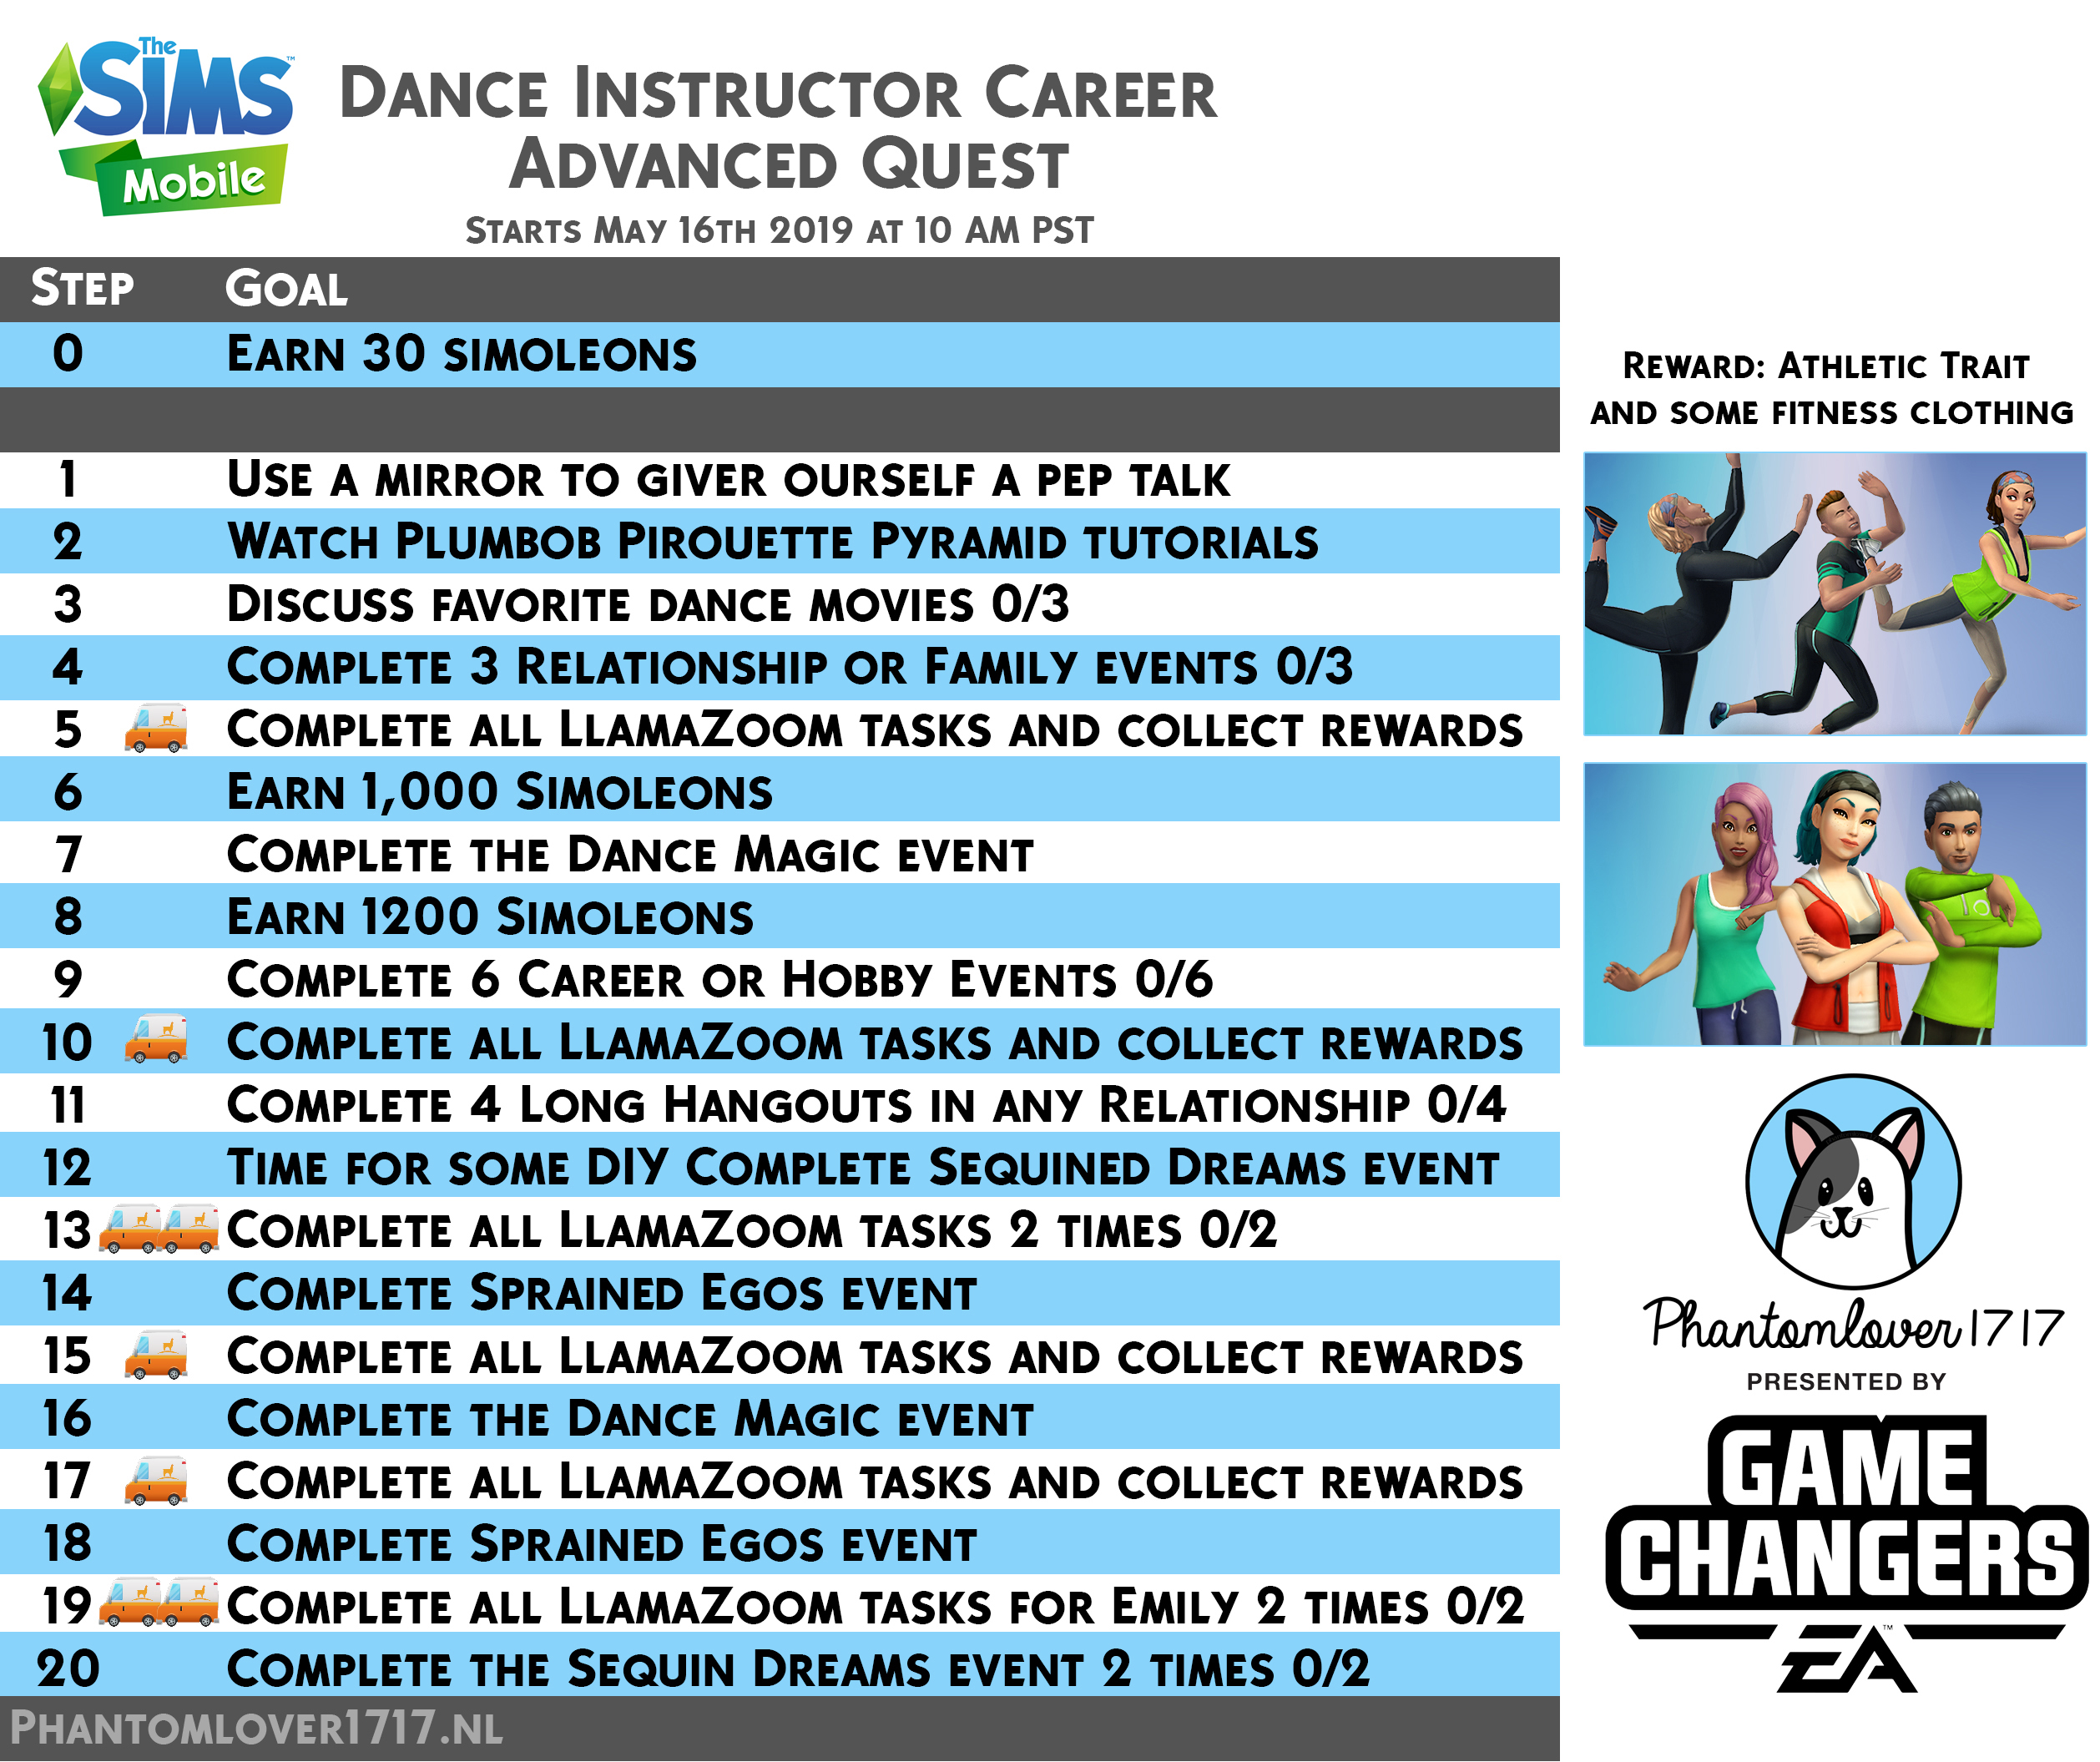 DanceinstructorAdvanced.jpg